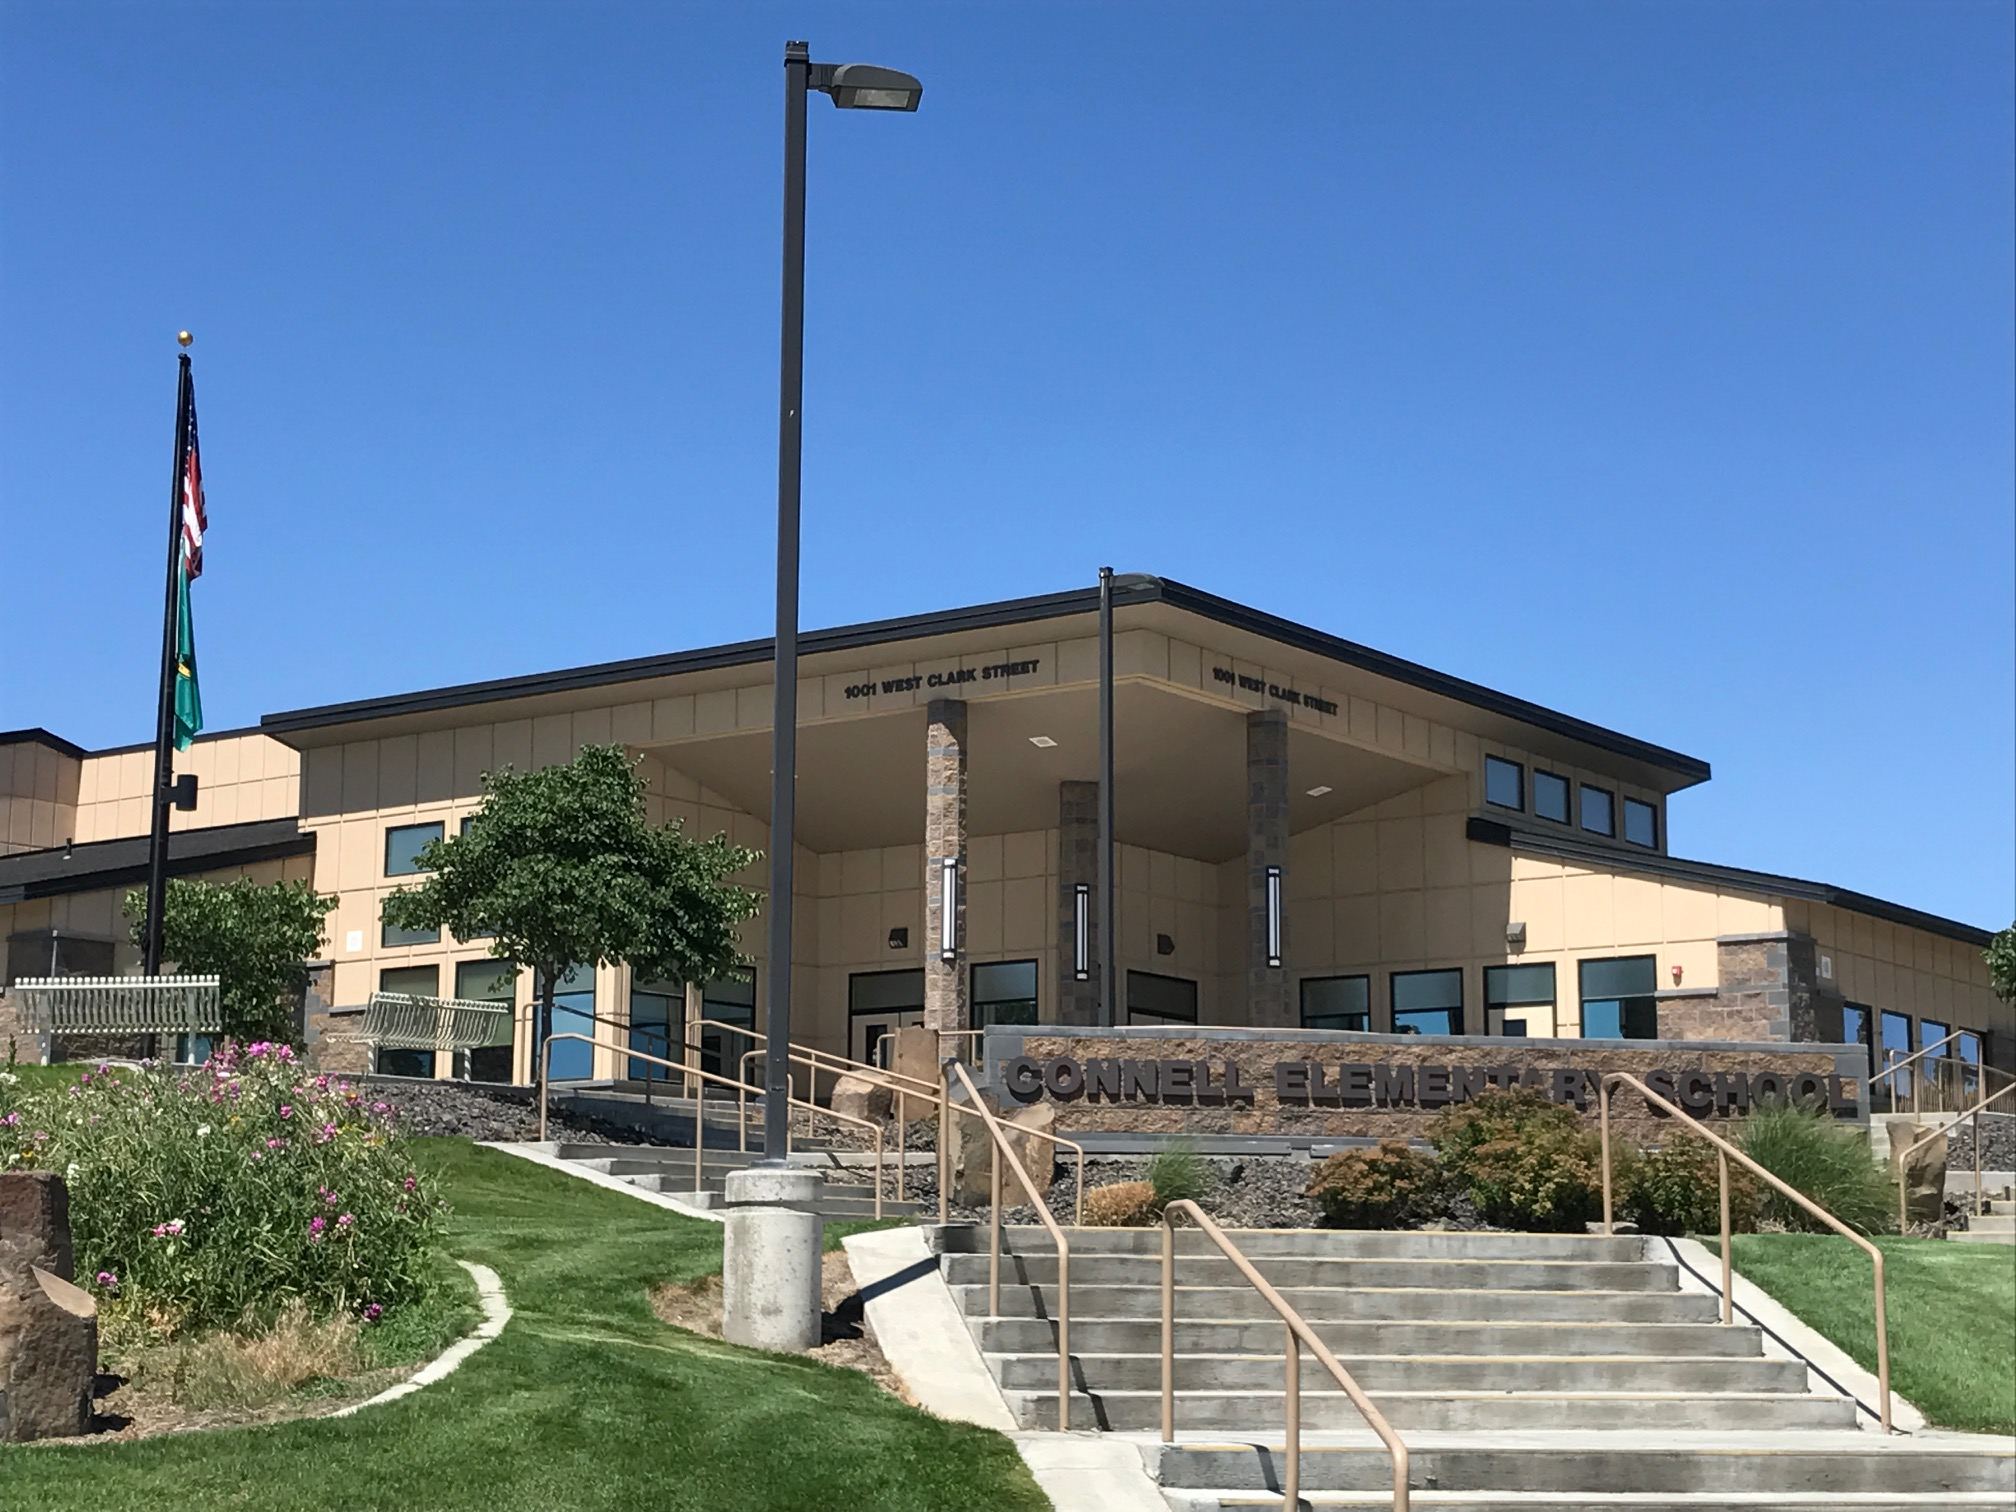 New elementary school in Connell, Washington